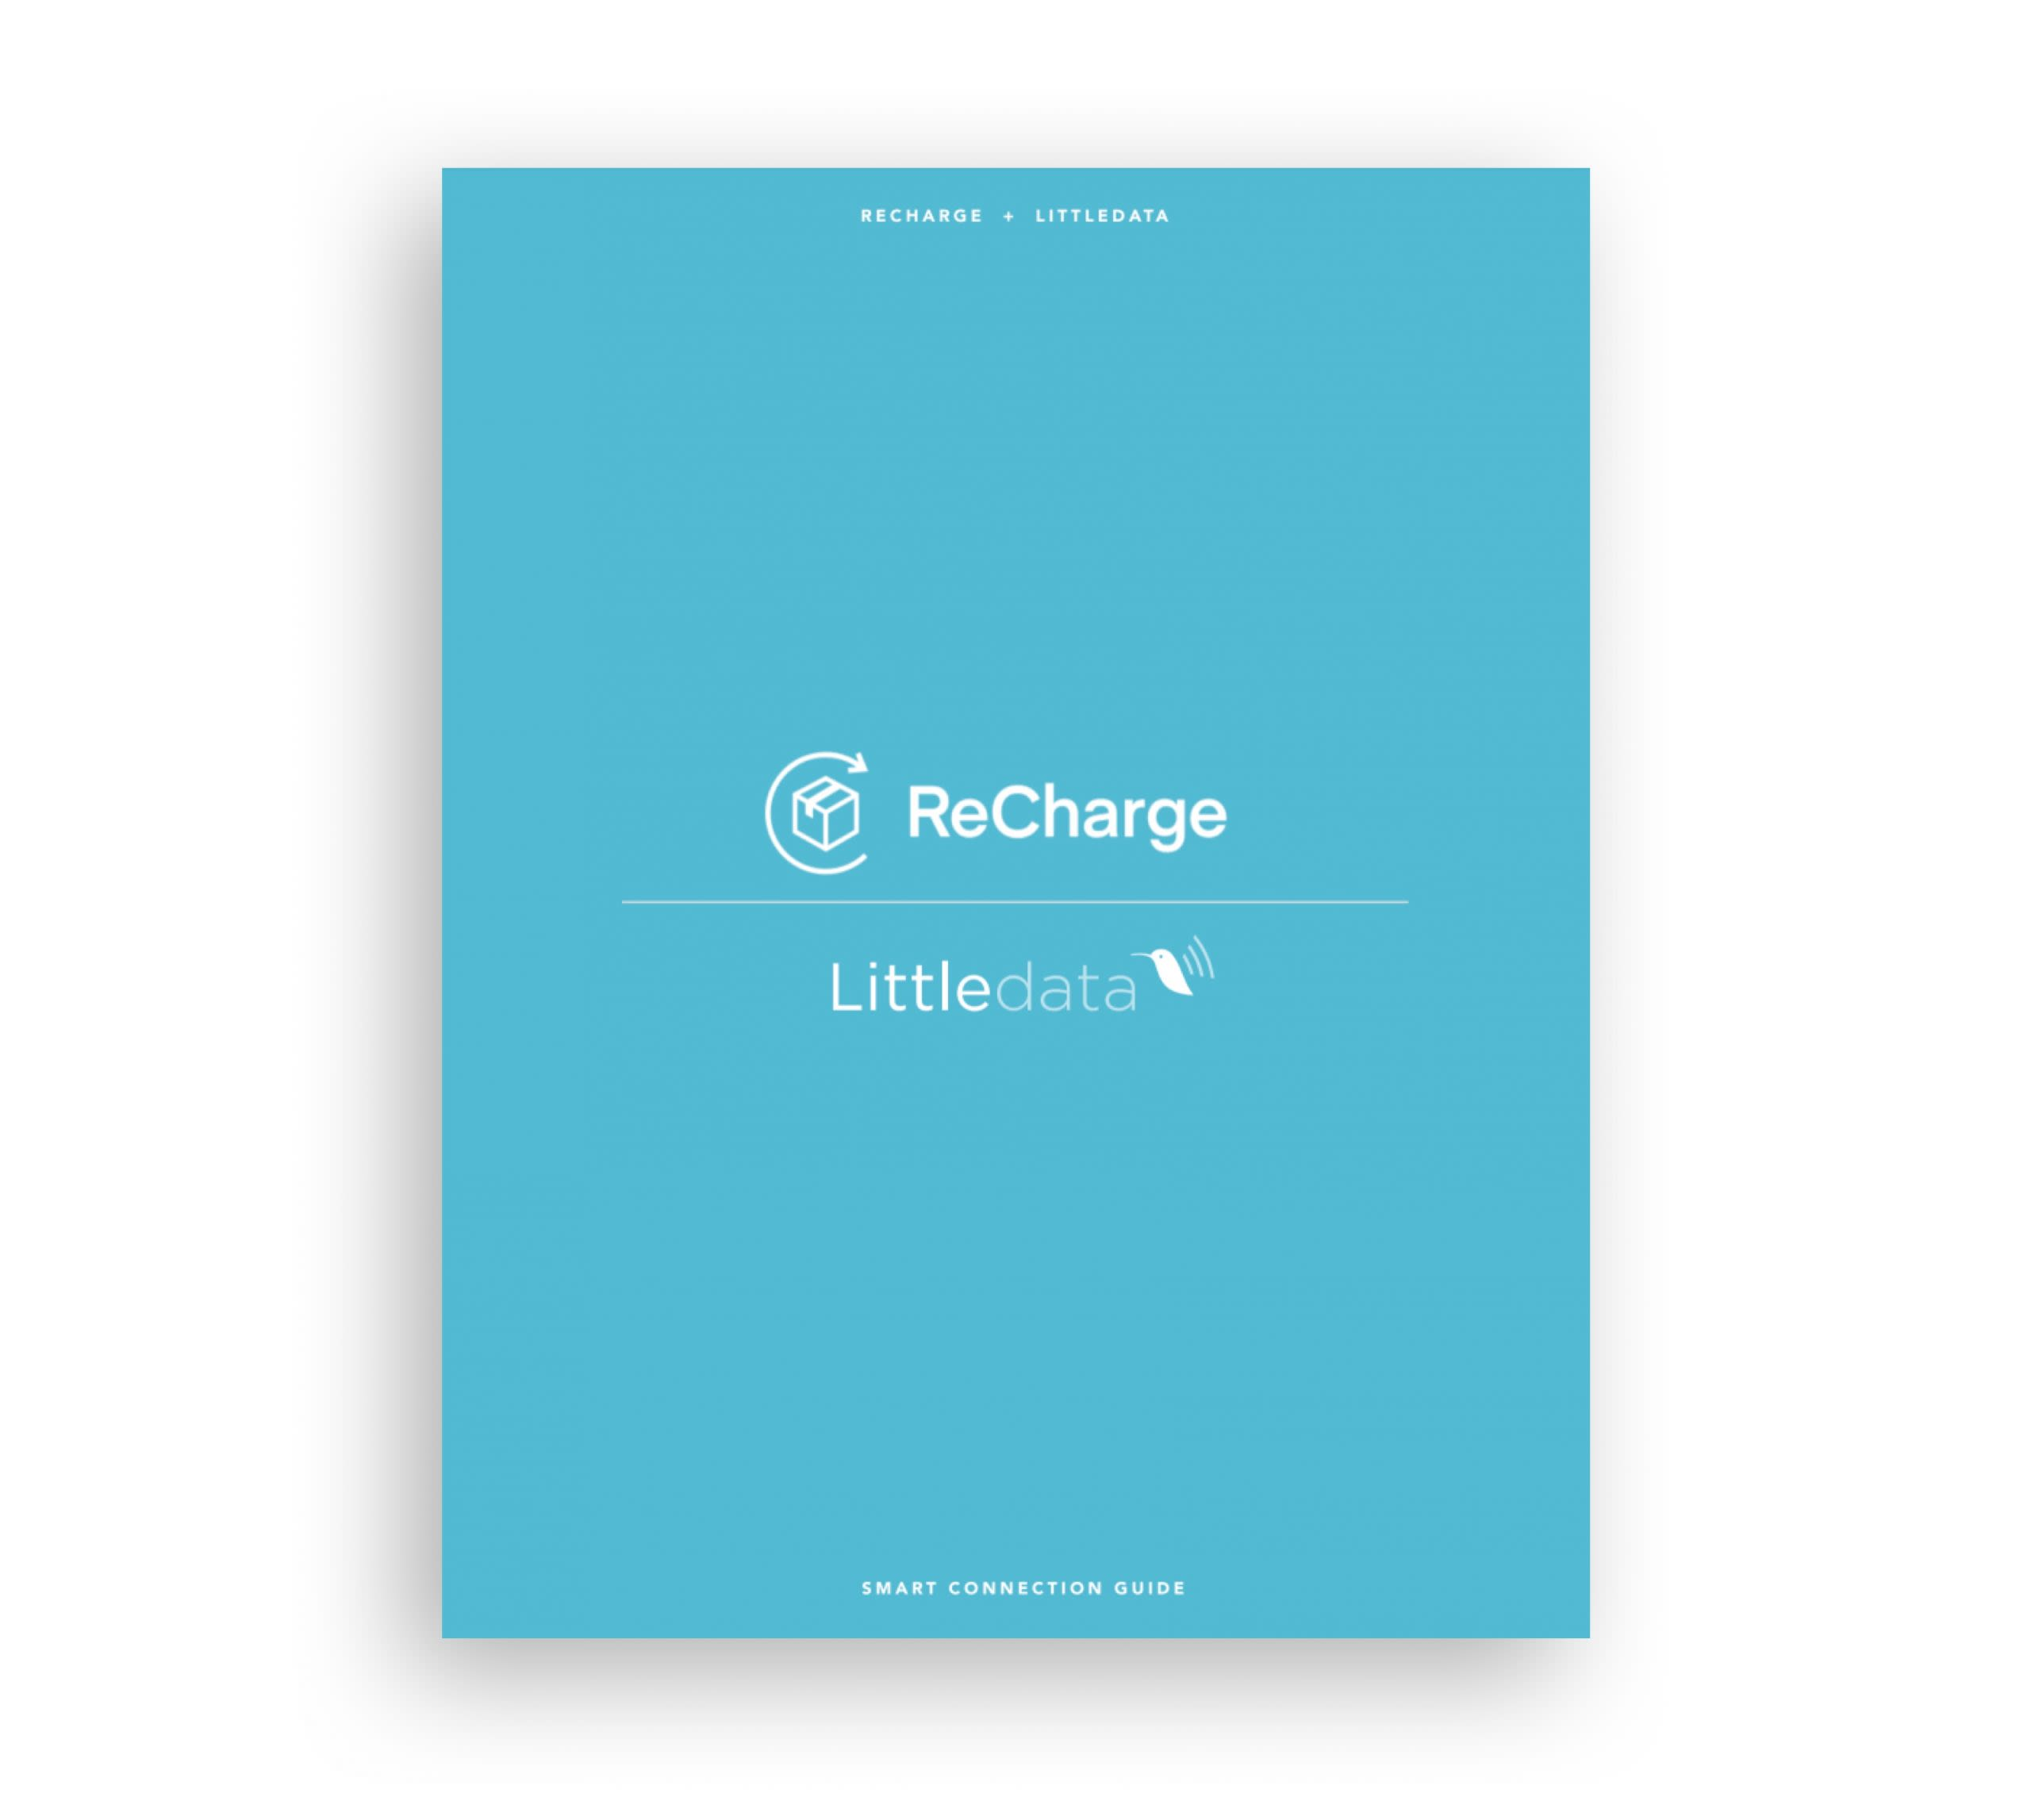 shopify recharge smart connection guide for google analytics or segment, by Littledata